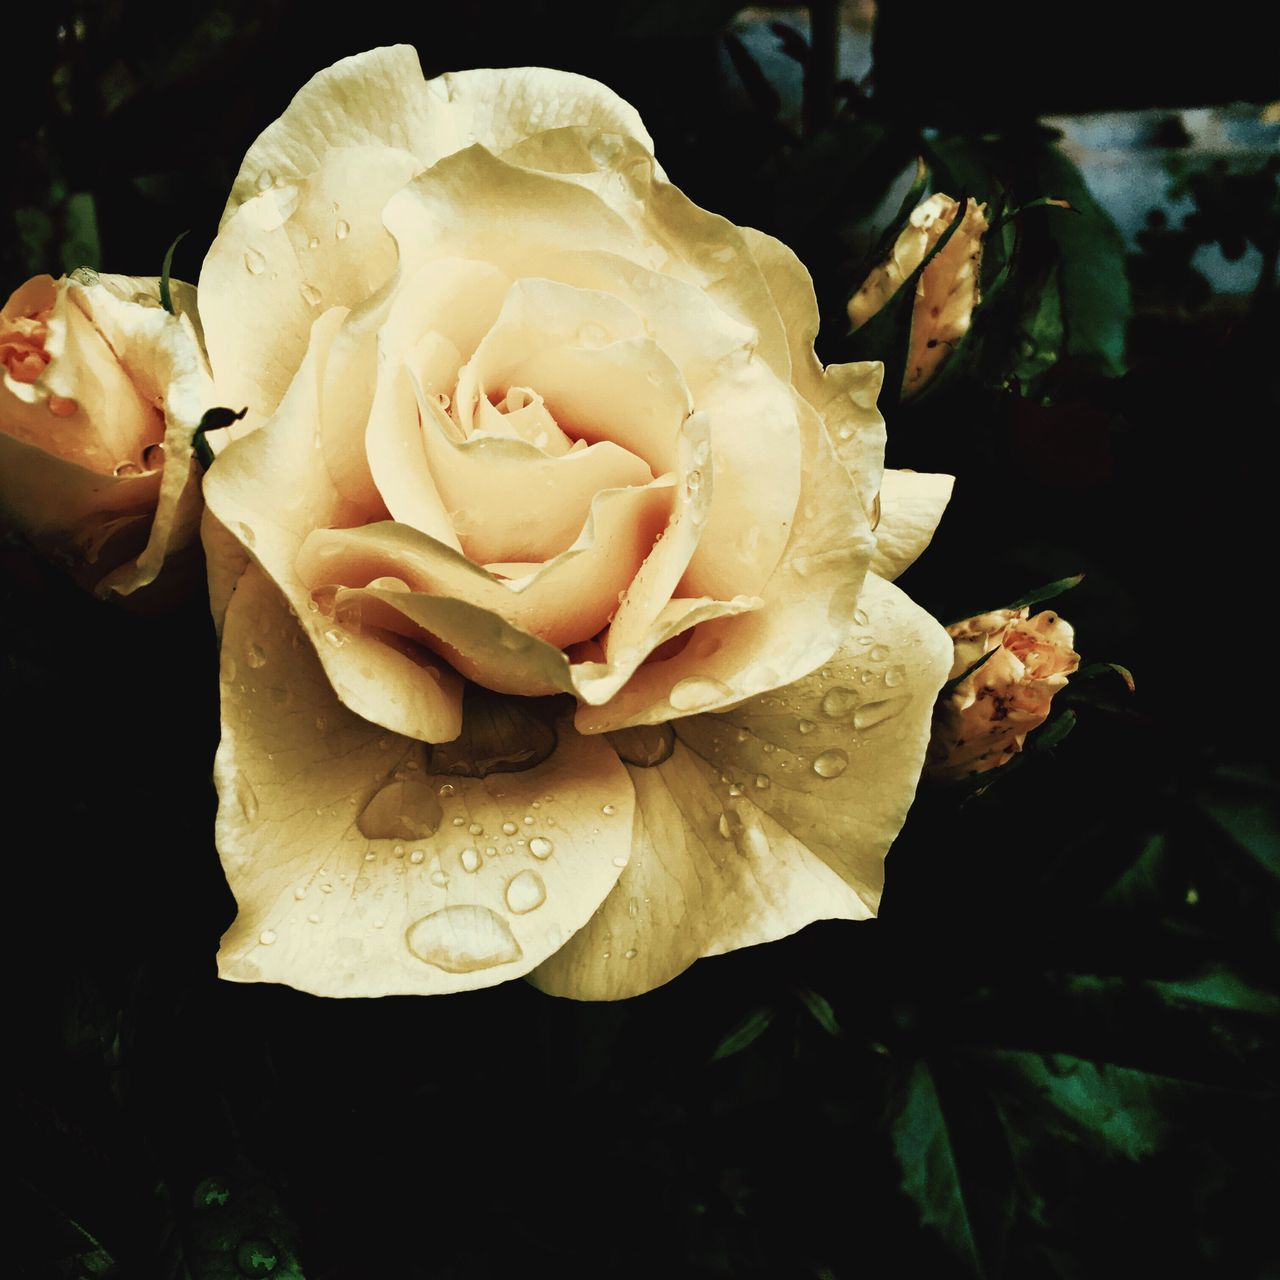 Flower Rose - Flower Rosé Fragility Petal Nature Plant Close-up Freshness Growth Beauty In Nature Water Flower Head No People Outdoors Day